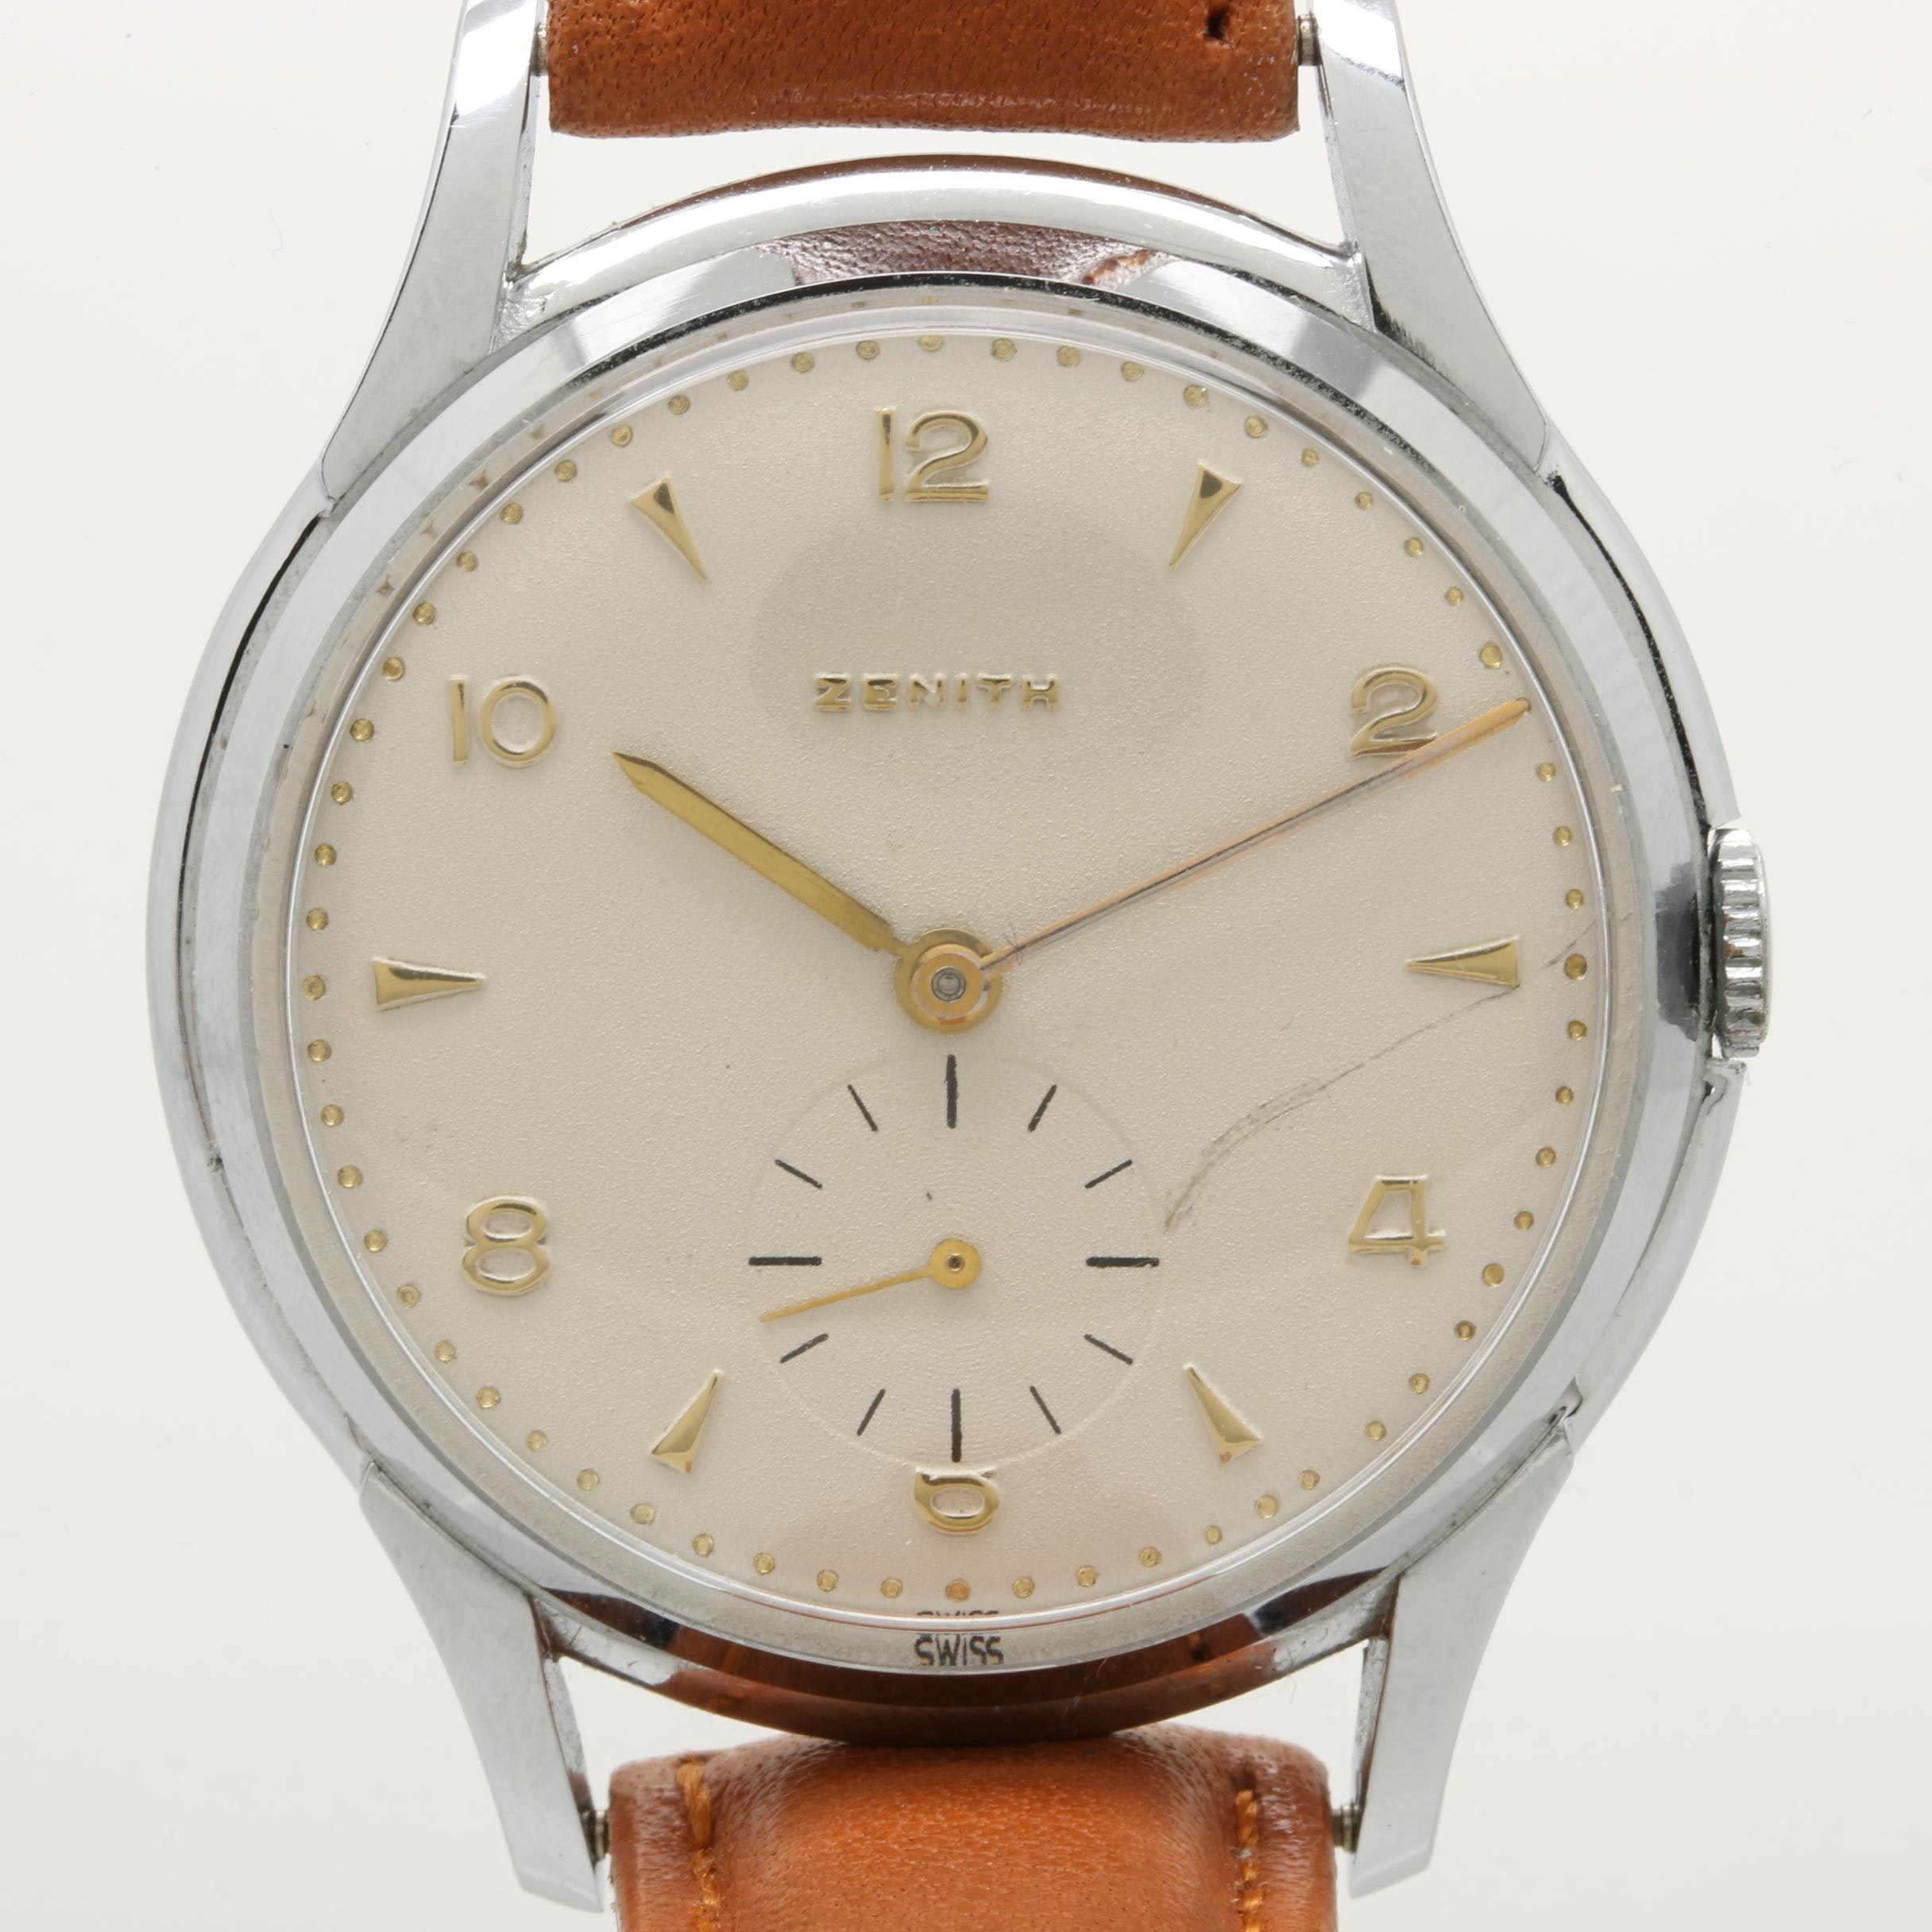 Zenith Stainless Steel and Leather Stemwind Wristwatch